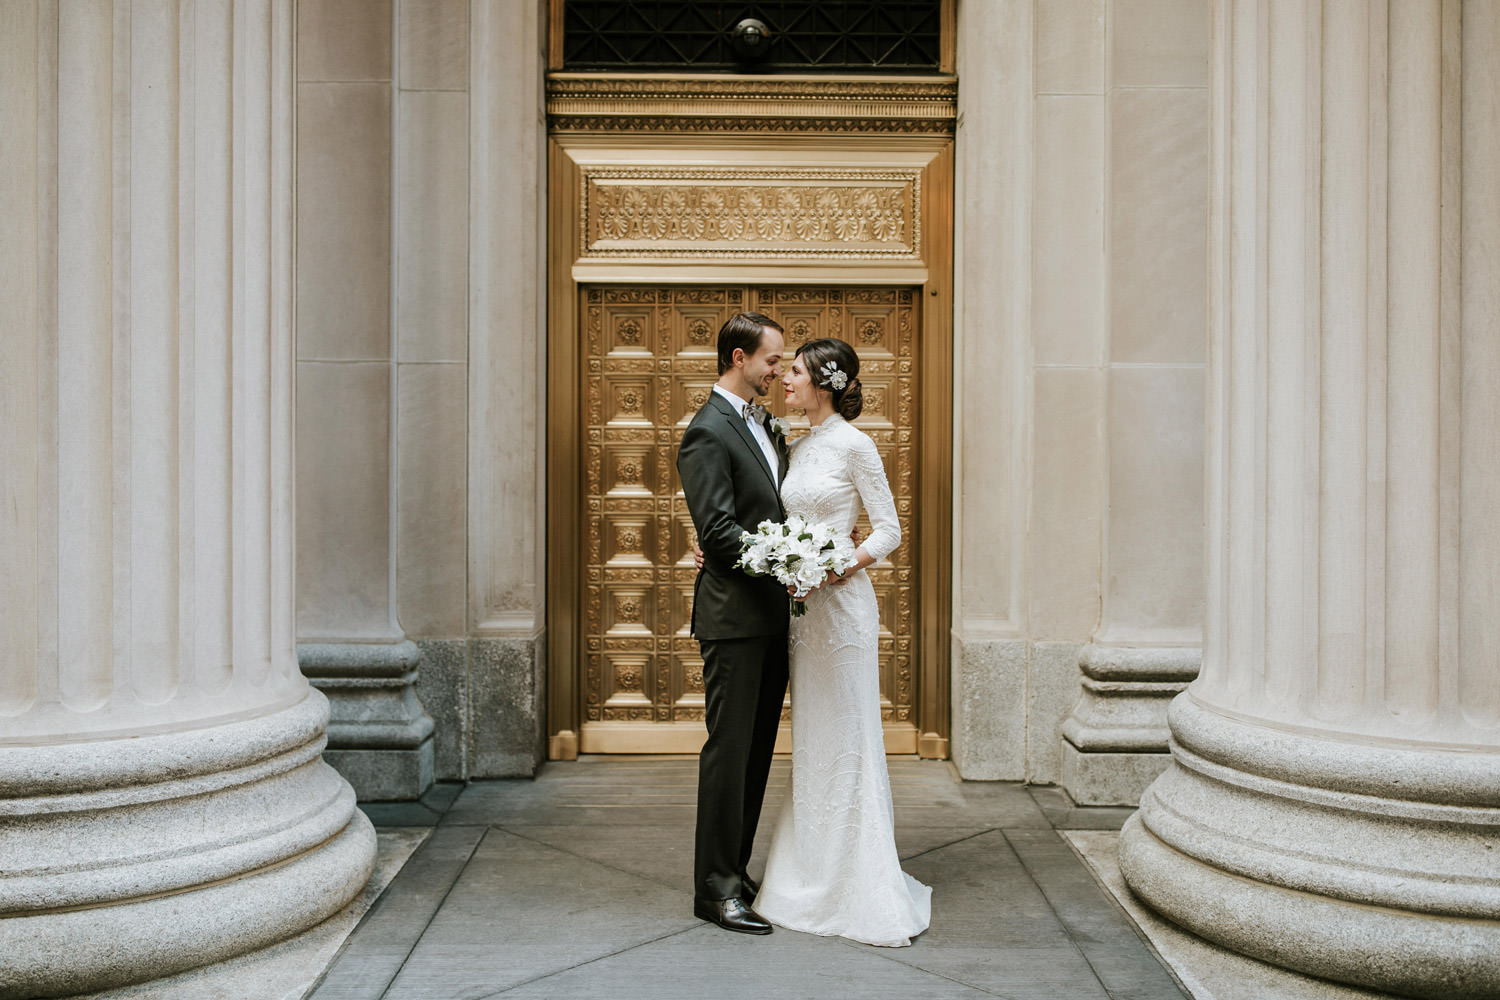 Artistic portrait of the bride and groom taken on their wedding day around Chicago Board of Trade